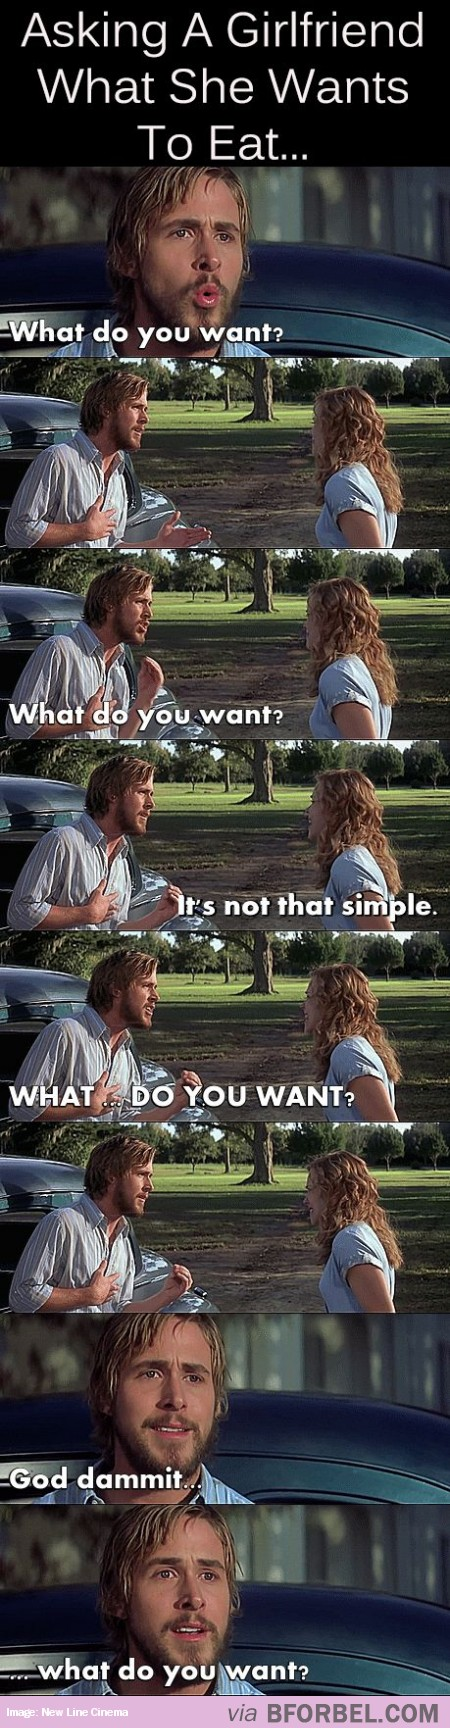 Whenever Guys Ask Their Girls What She Wants To Eat…    Haha